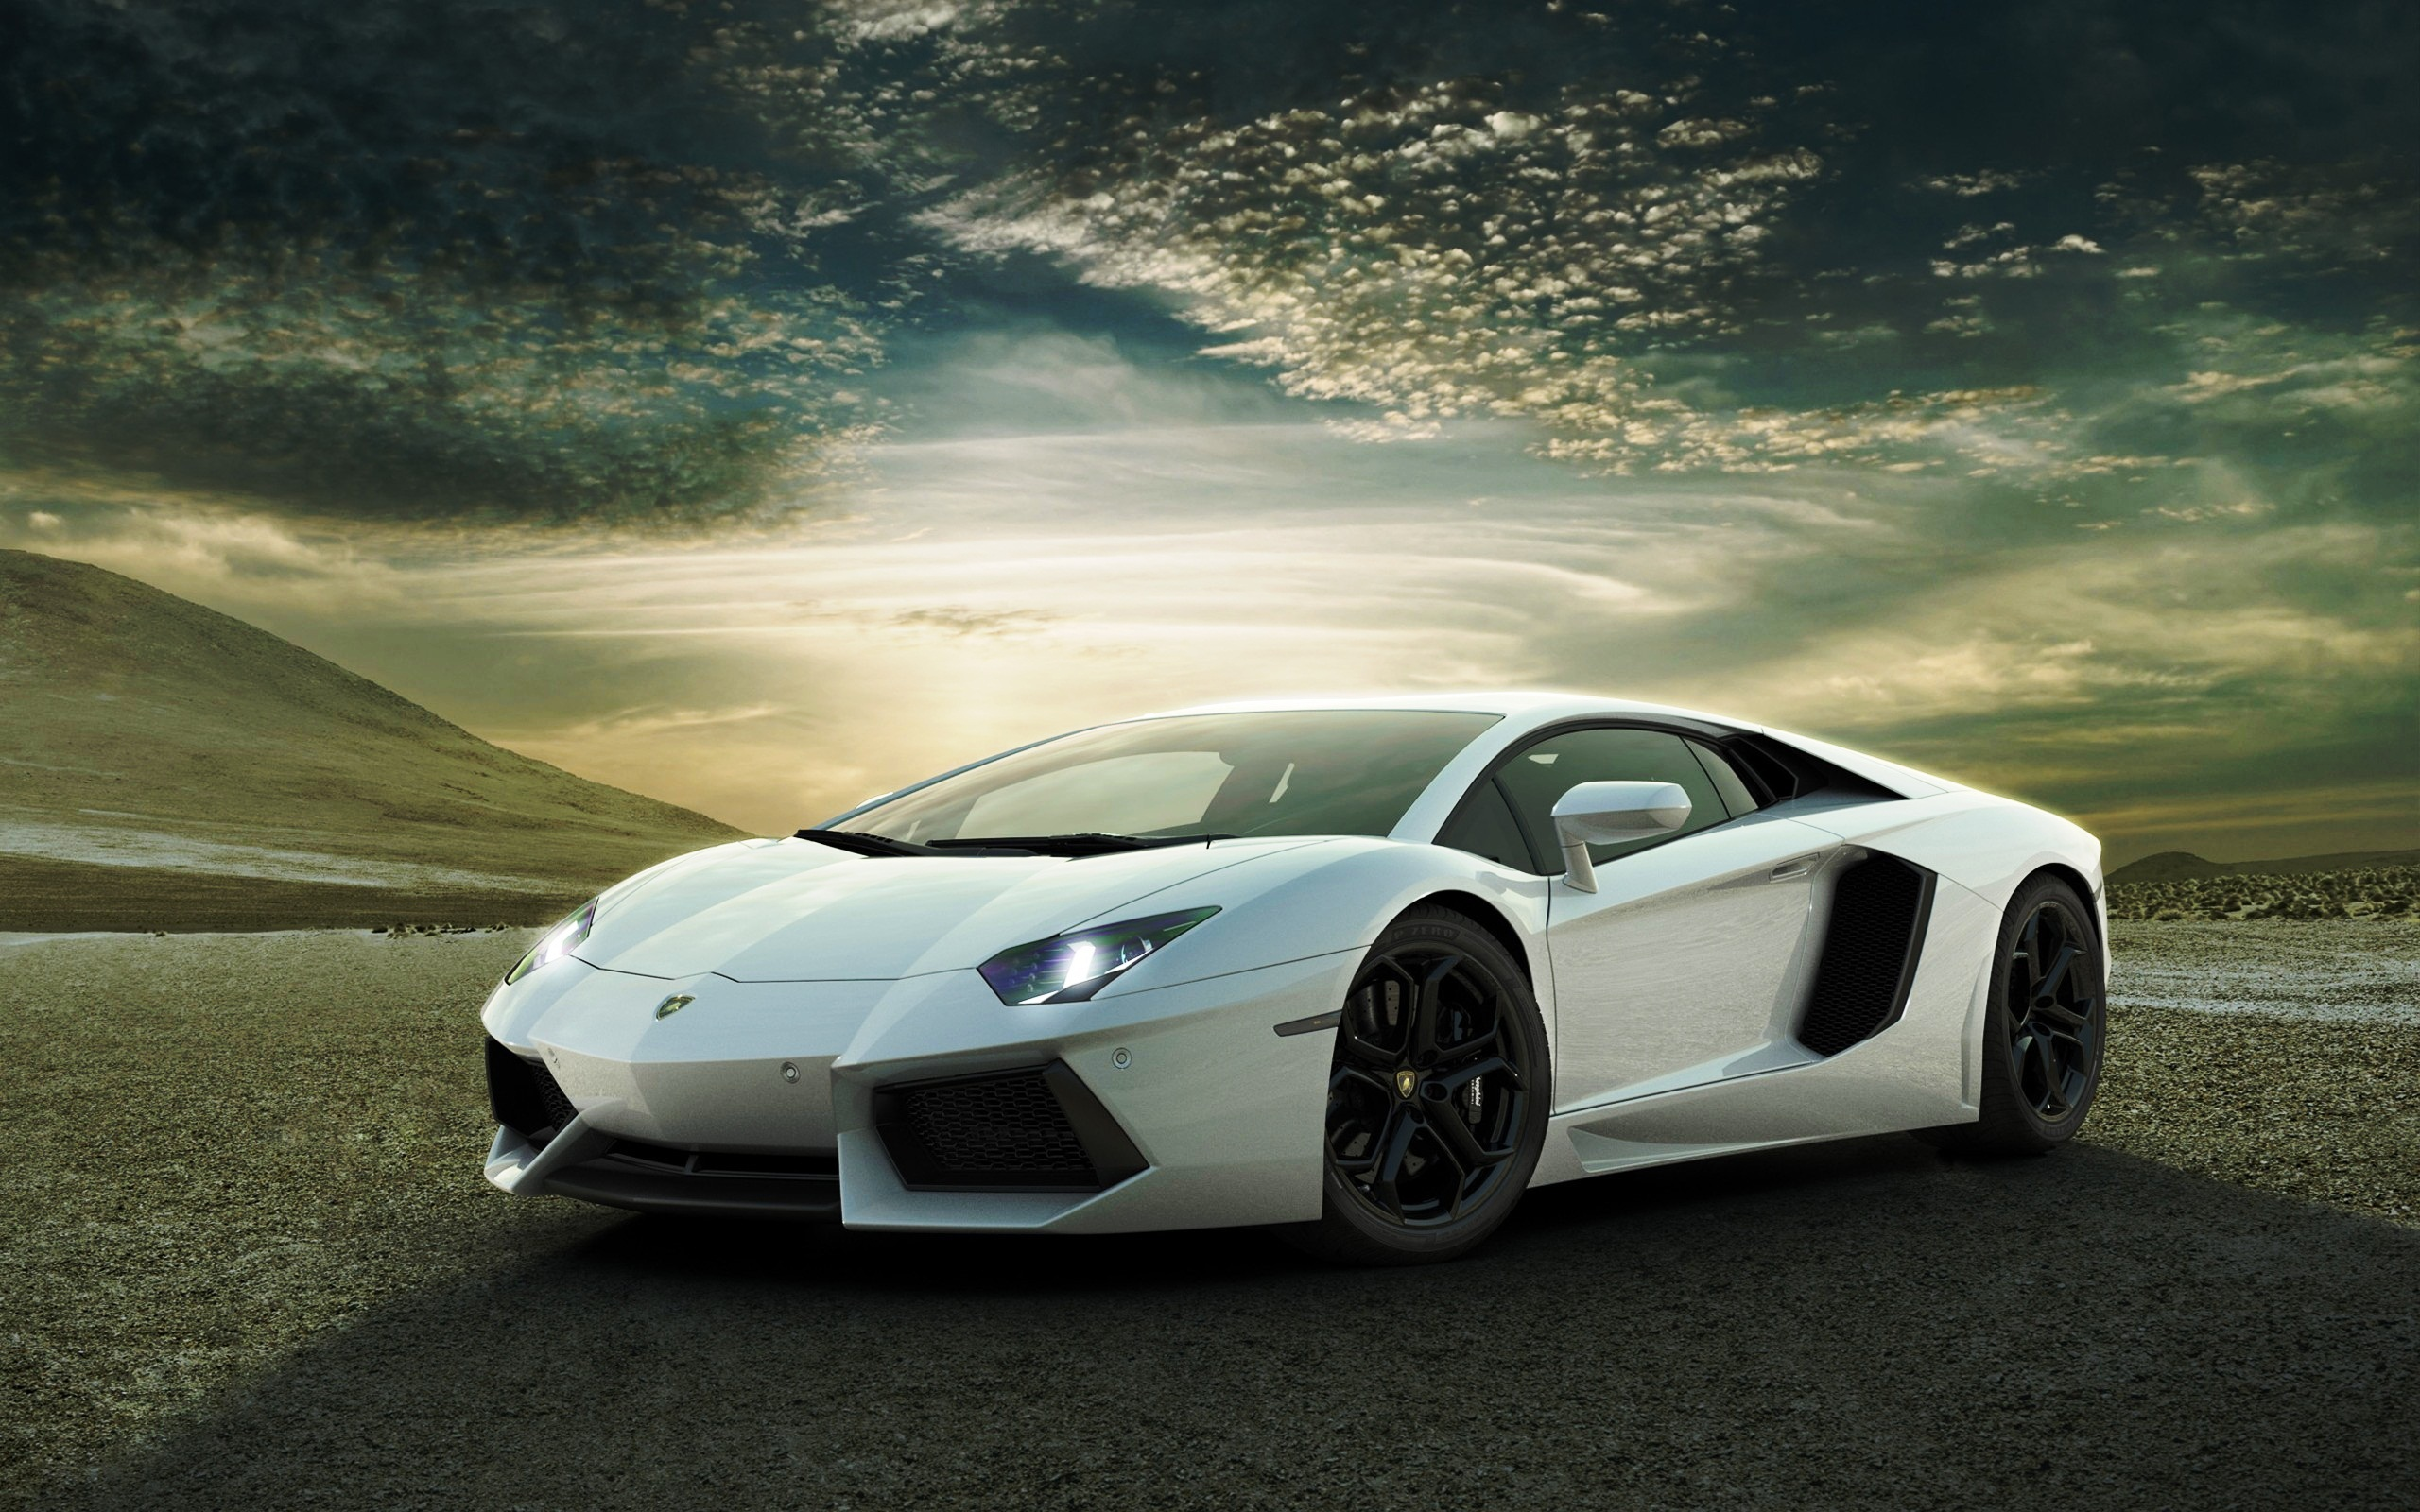 Lamborghini Aventador Wallpaper Picture